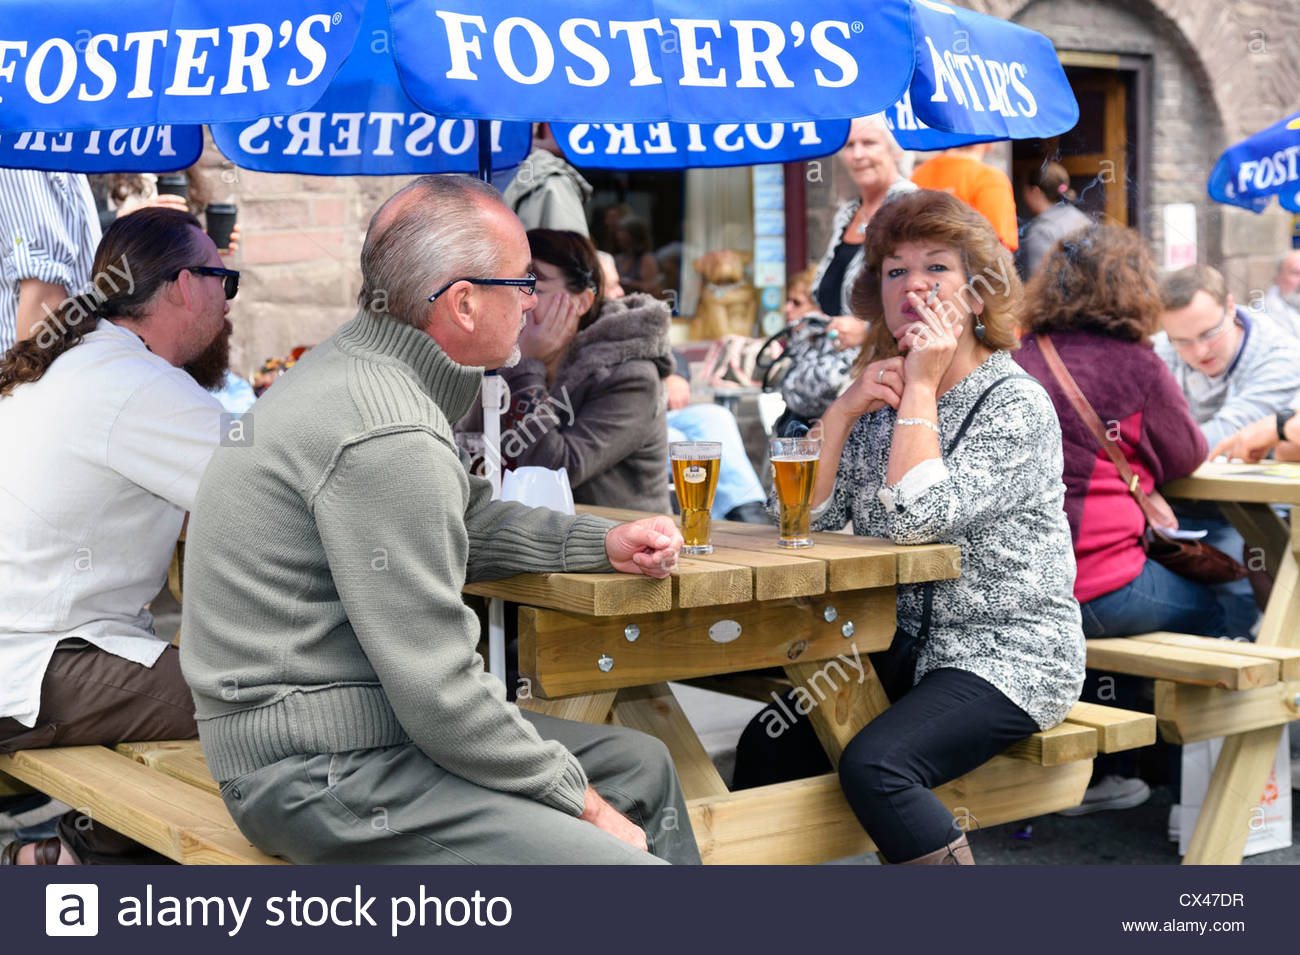 Woman smoking a cigarette in a pub beer garden, Abergavenny, Wales, UK. - Stock Image